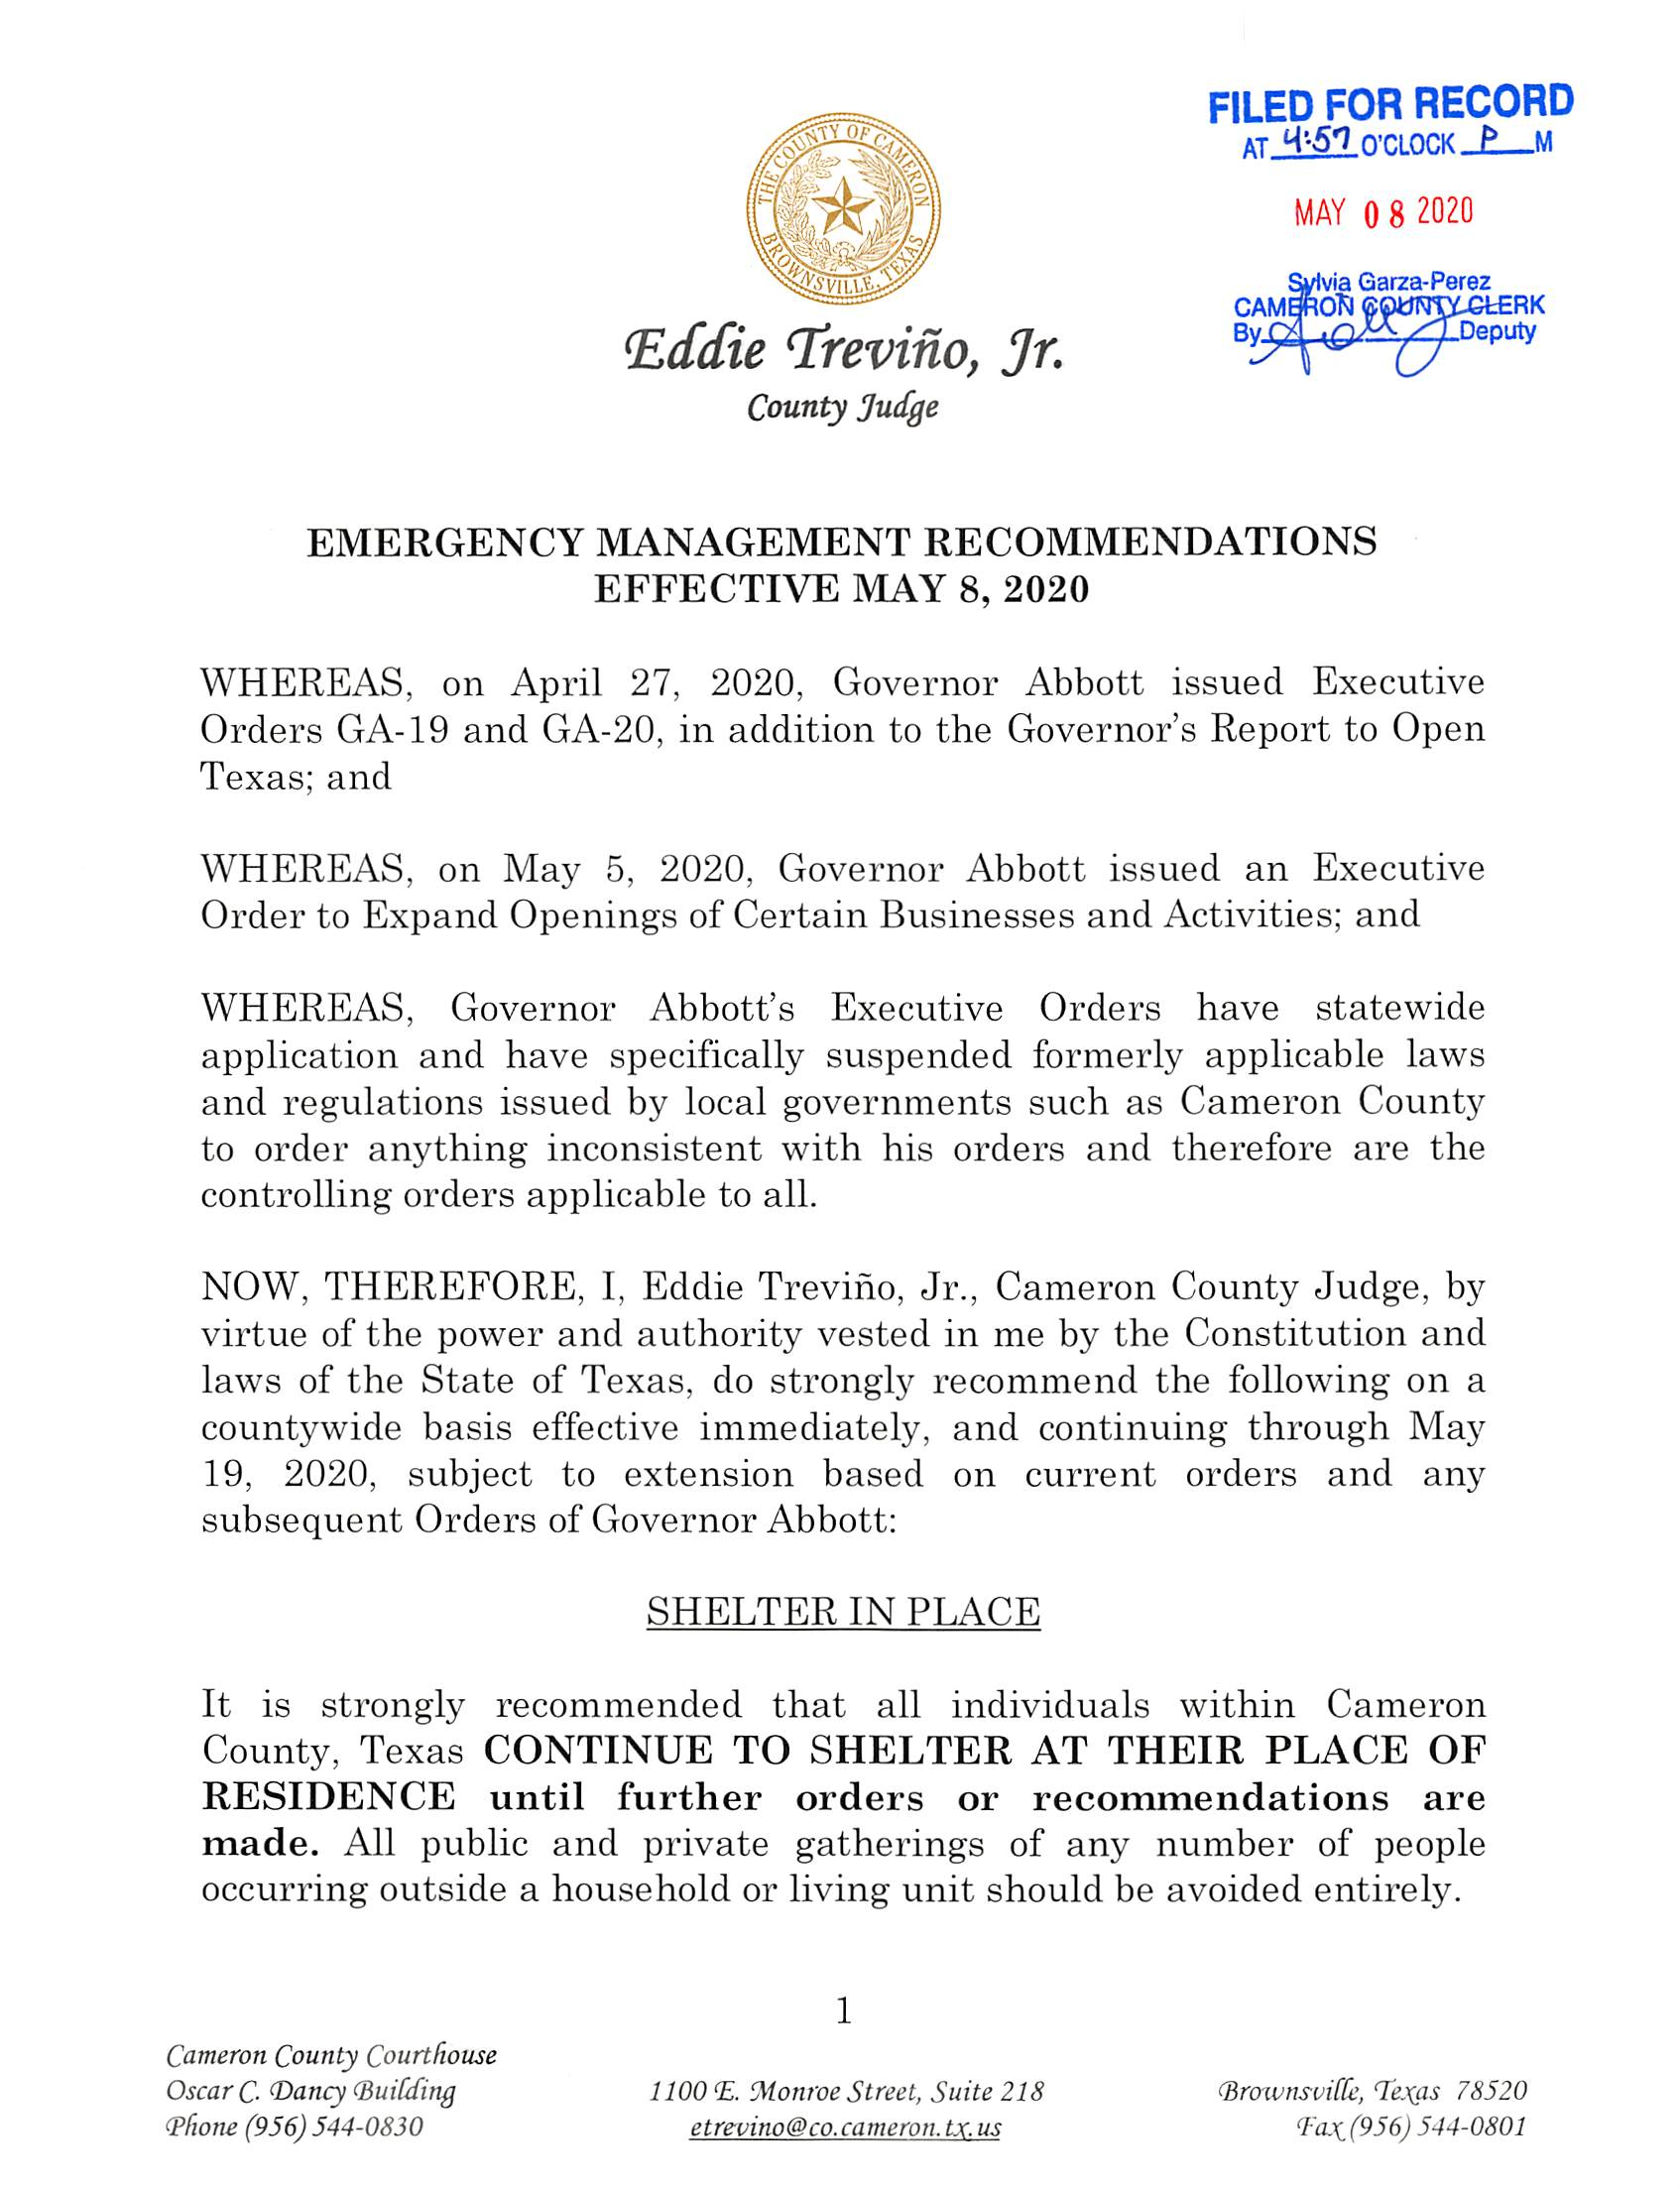 2020.05.08 Order Emergency Management Recommendations Effective May 8 2020 002 Page 1